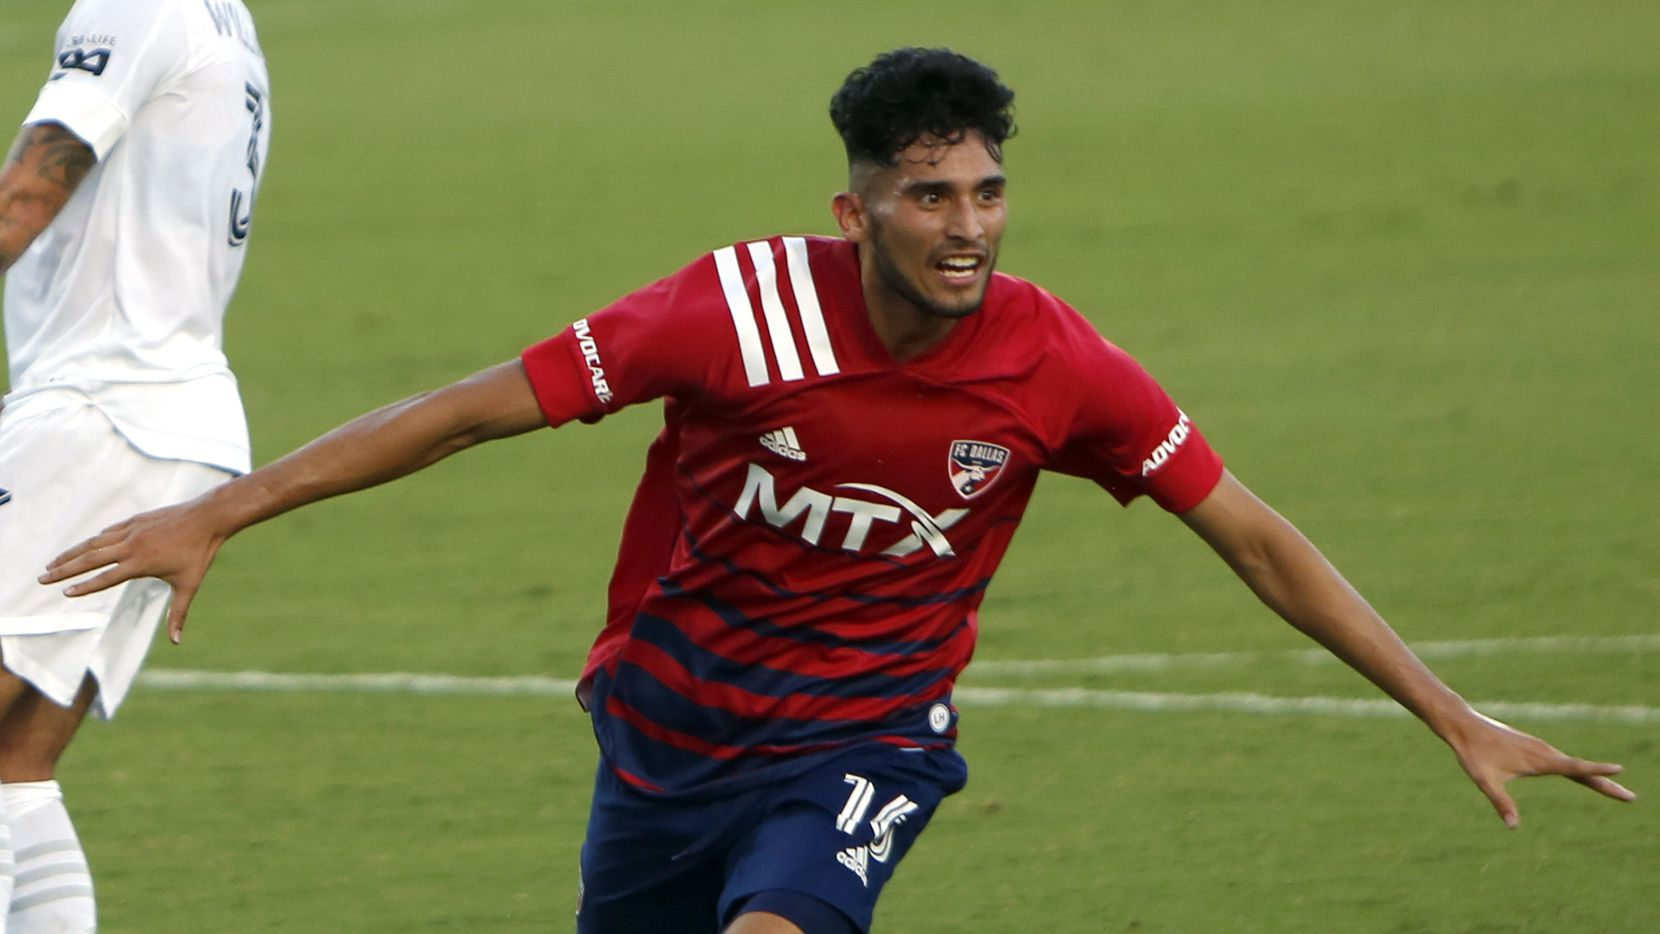 FC Dallas forward Ricardo Pepe (16) celebrates a goal to break a scoreless tie during first half action against LA Galaxy. The two teams played their MLS match at Toyota Stadium in Frisco on July 24, 2021. (Steve Hamm/ Special Contributor)